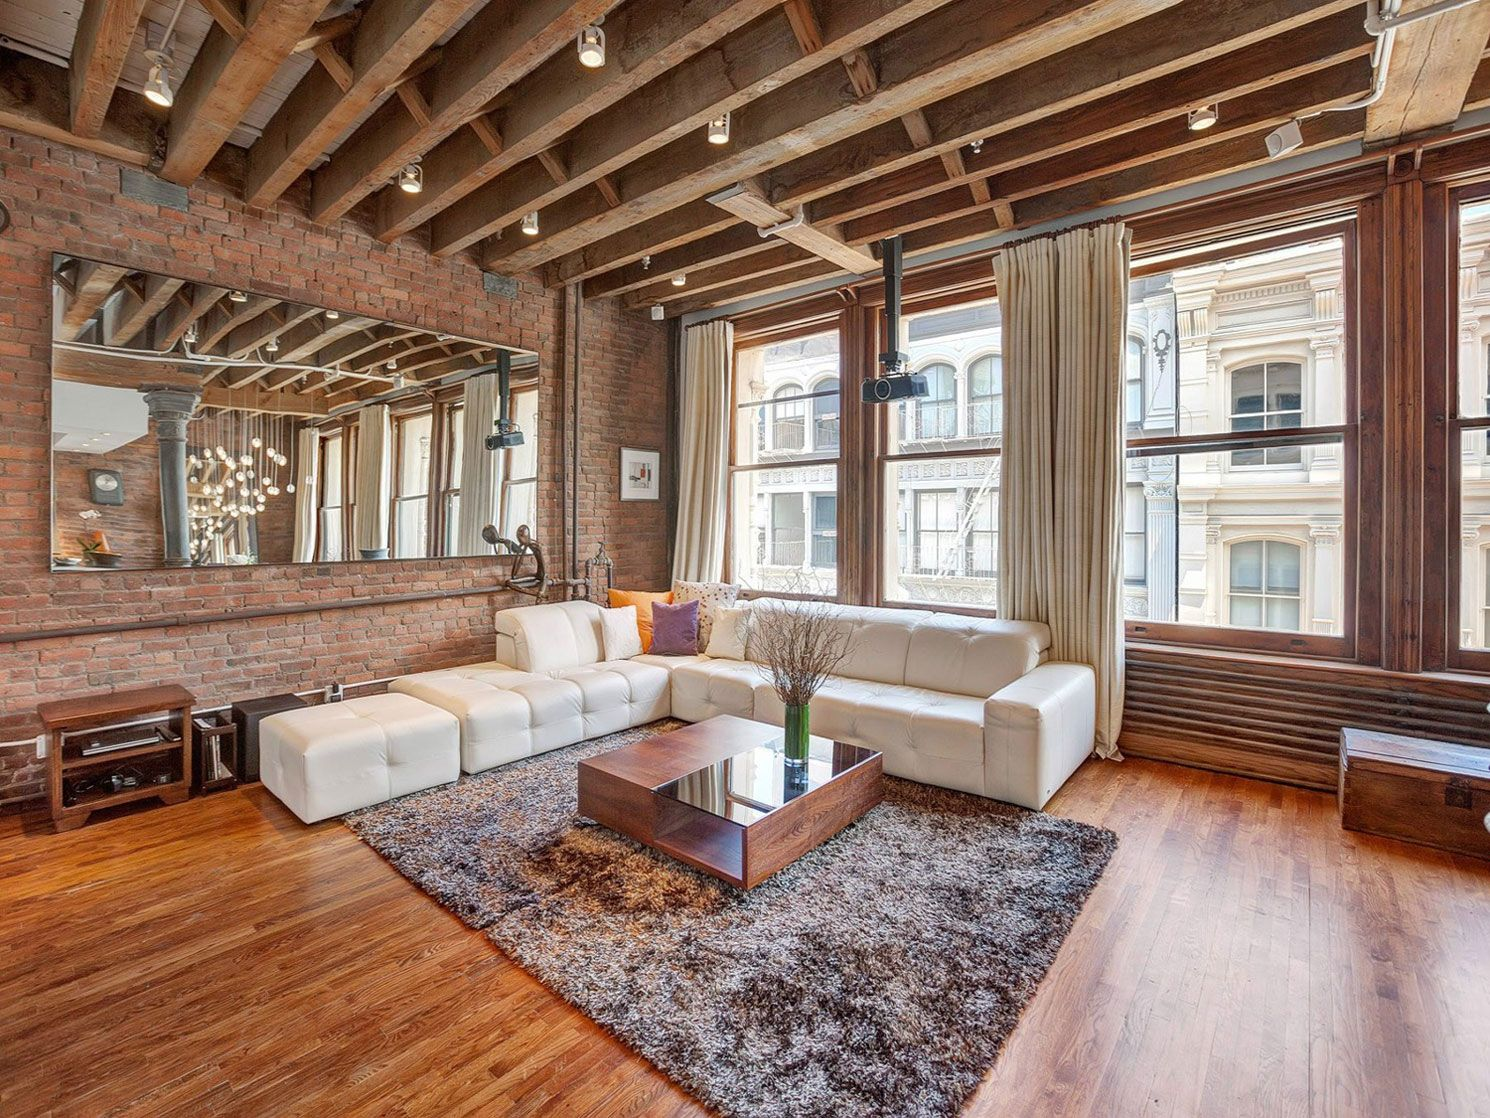 Open Plan Apartment With Exposed Wood Beams And Iron Columns Loft Apartment Decorating Brick Living Room Loft Design